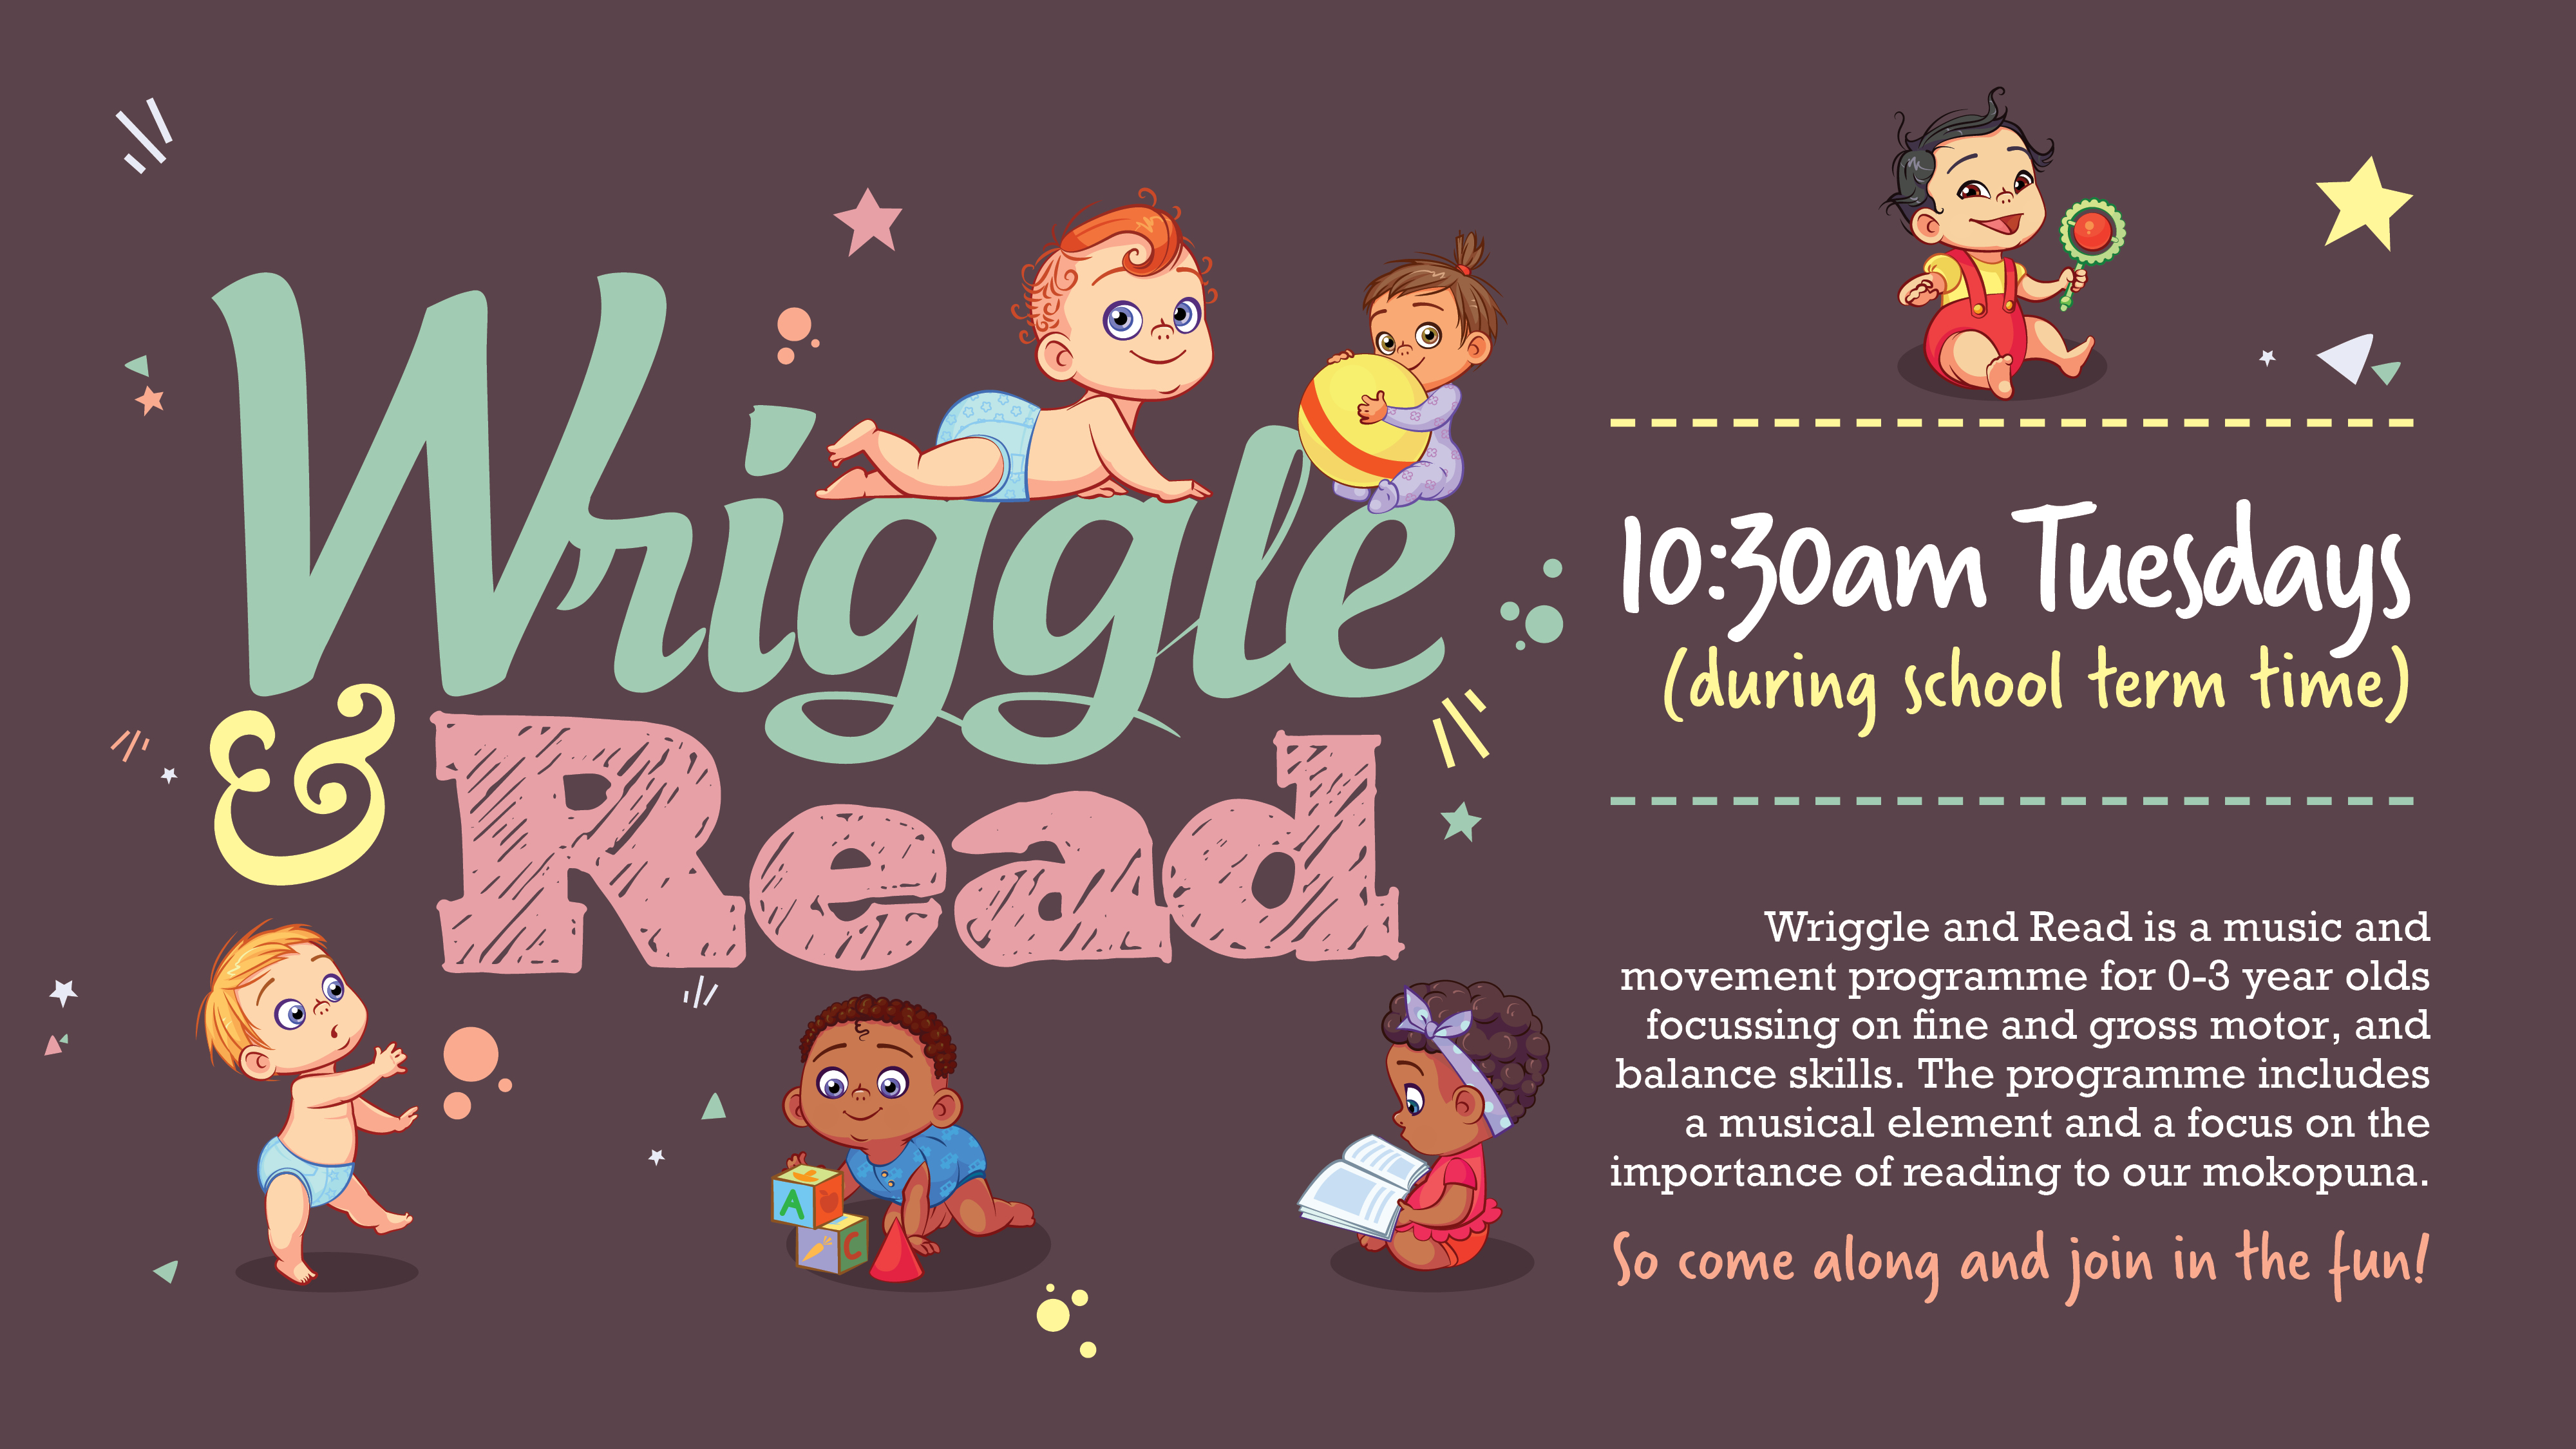 Wriggle and Read movement to music programme.